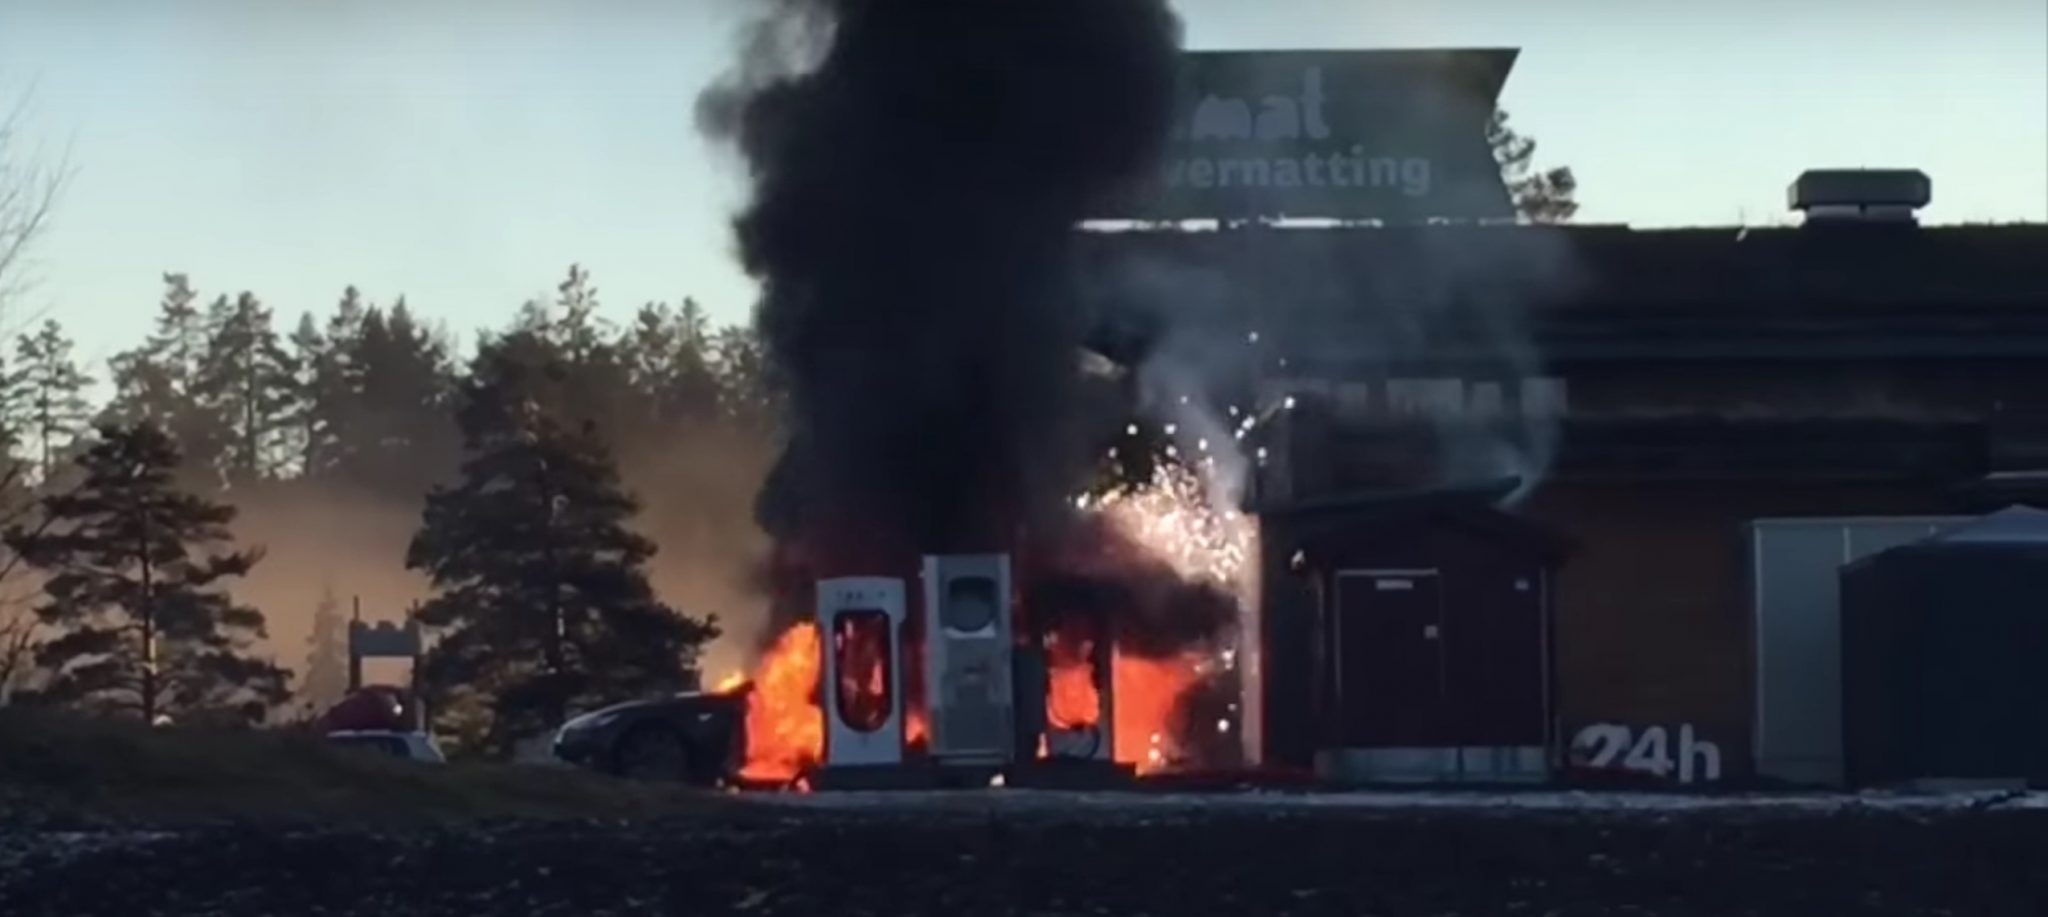 Tesla Model S engulfed in flames while charging in Norway